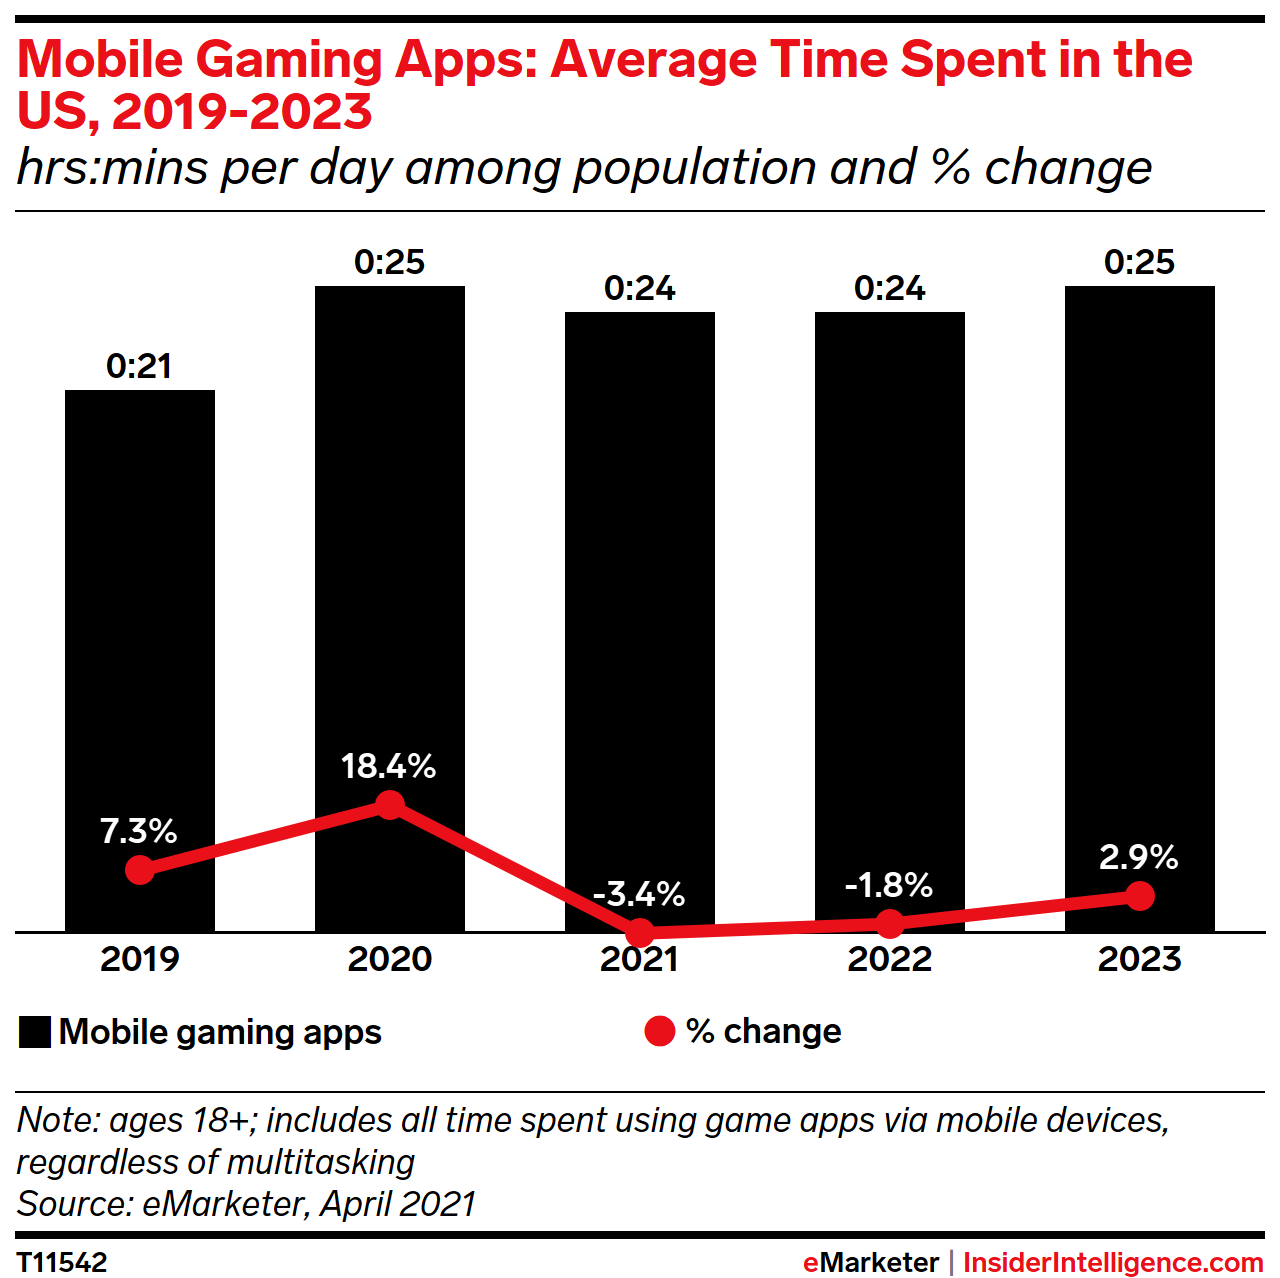 Gaming Apps: Average Time Spent in the US, 2019-2023 (hrs:mins per day among population and % change)